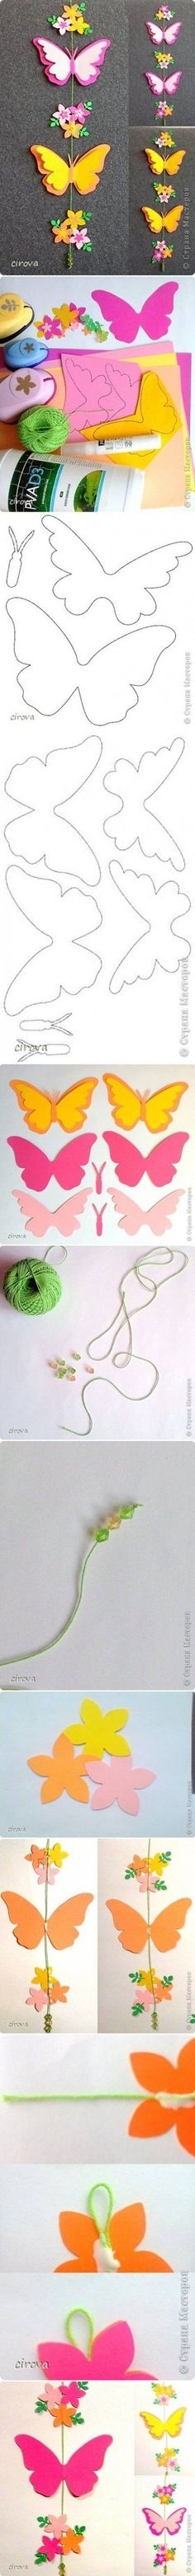 How to make Paper Butterfly Mobile step by step DIY tutorial instructions - foamy / goma eva: